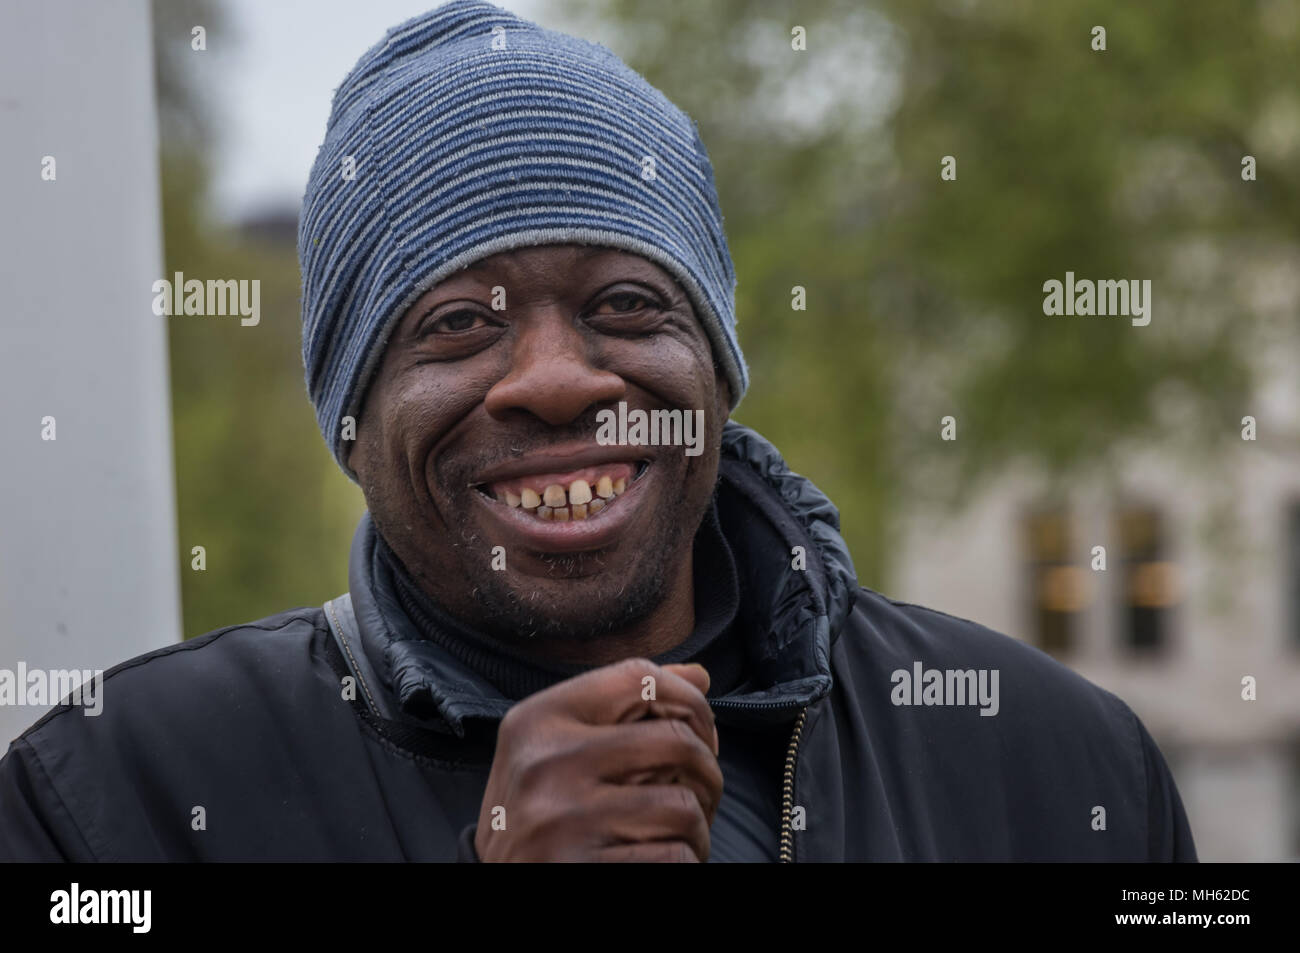 London, UK. 30th April 2018. Stand Up To Racism Co-Convenor Weyman Bennett speaks at the protest in support of the petition calling for an end to the deportations of migrants in the 'Windrush generation' who arrived in Britain between 1948 and 1971. It calls on the government to change the burden of proof which means they are now required to prove their right to remain, and to provide compensation for any loss and hurt. re for many years, paying taxes and raising fami Credit: Peter Marshall/Alamy Live News - Stock Image